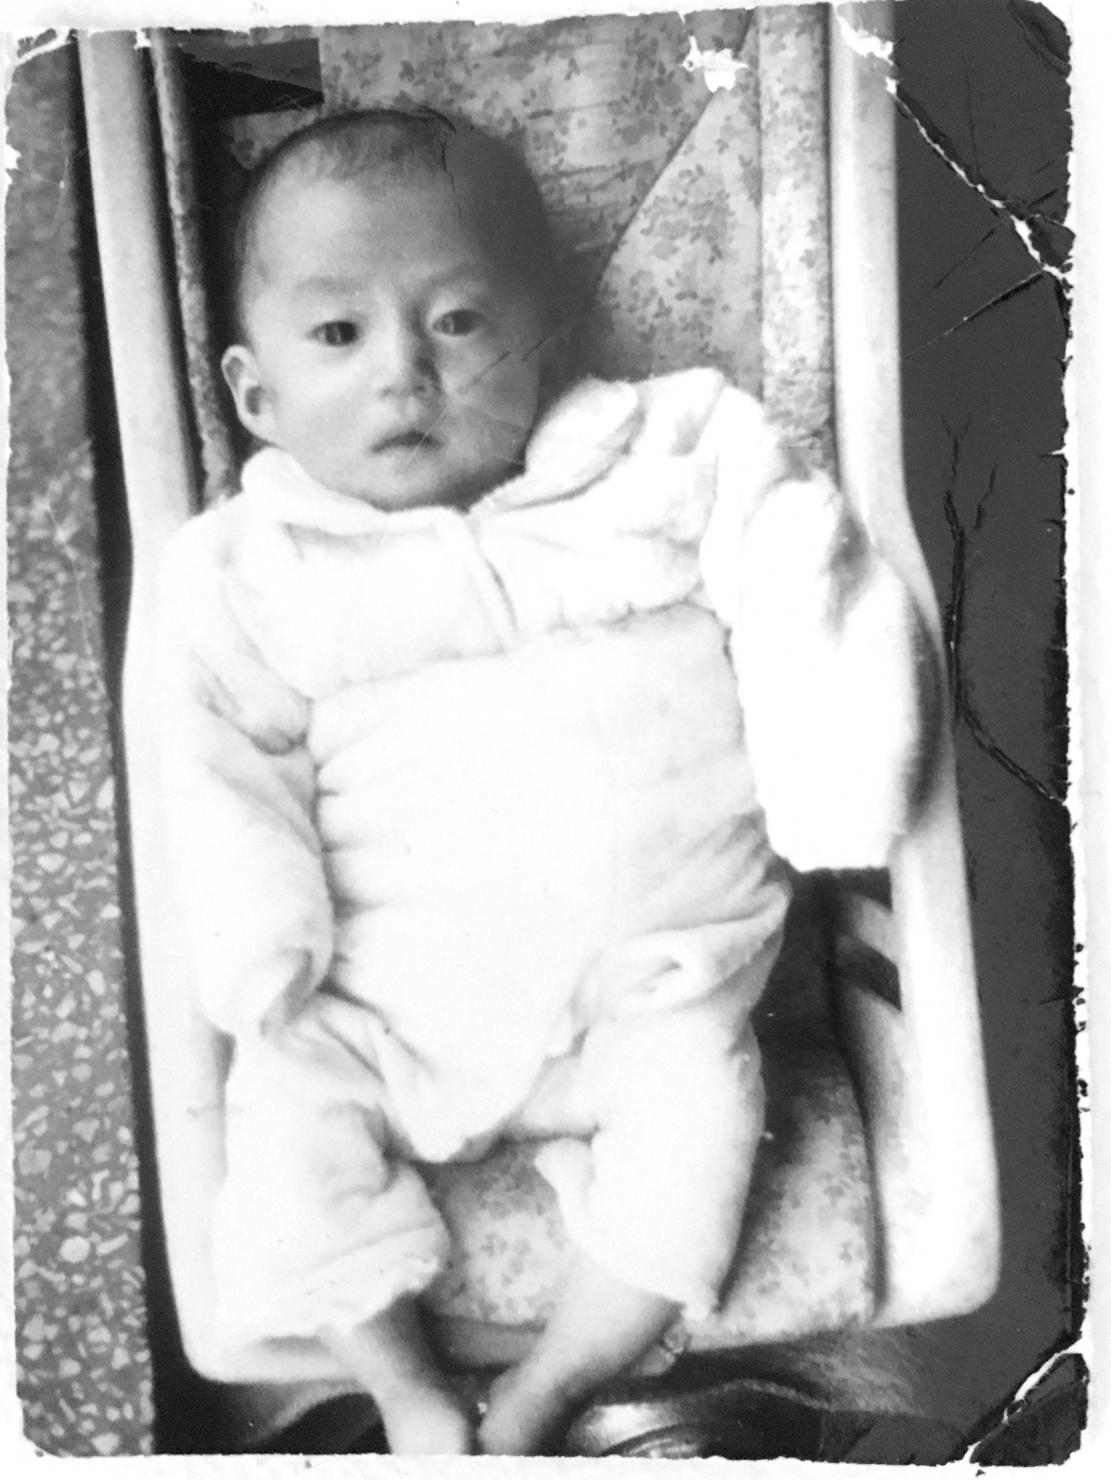 An adoption referral photograph of an infant up for adoption from 1975.